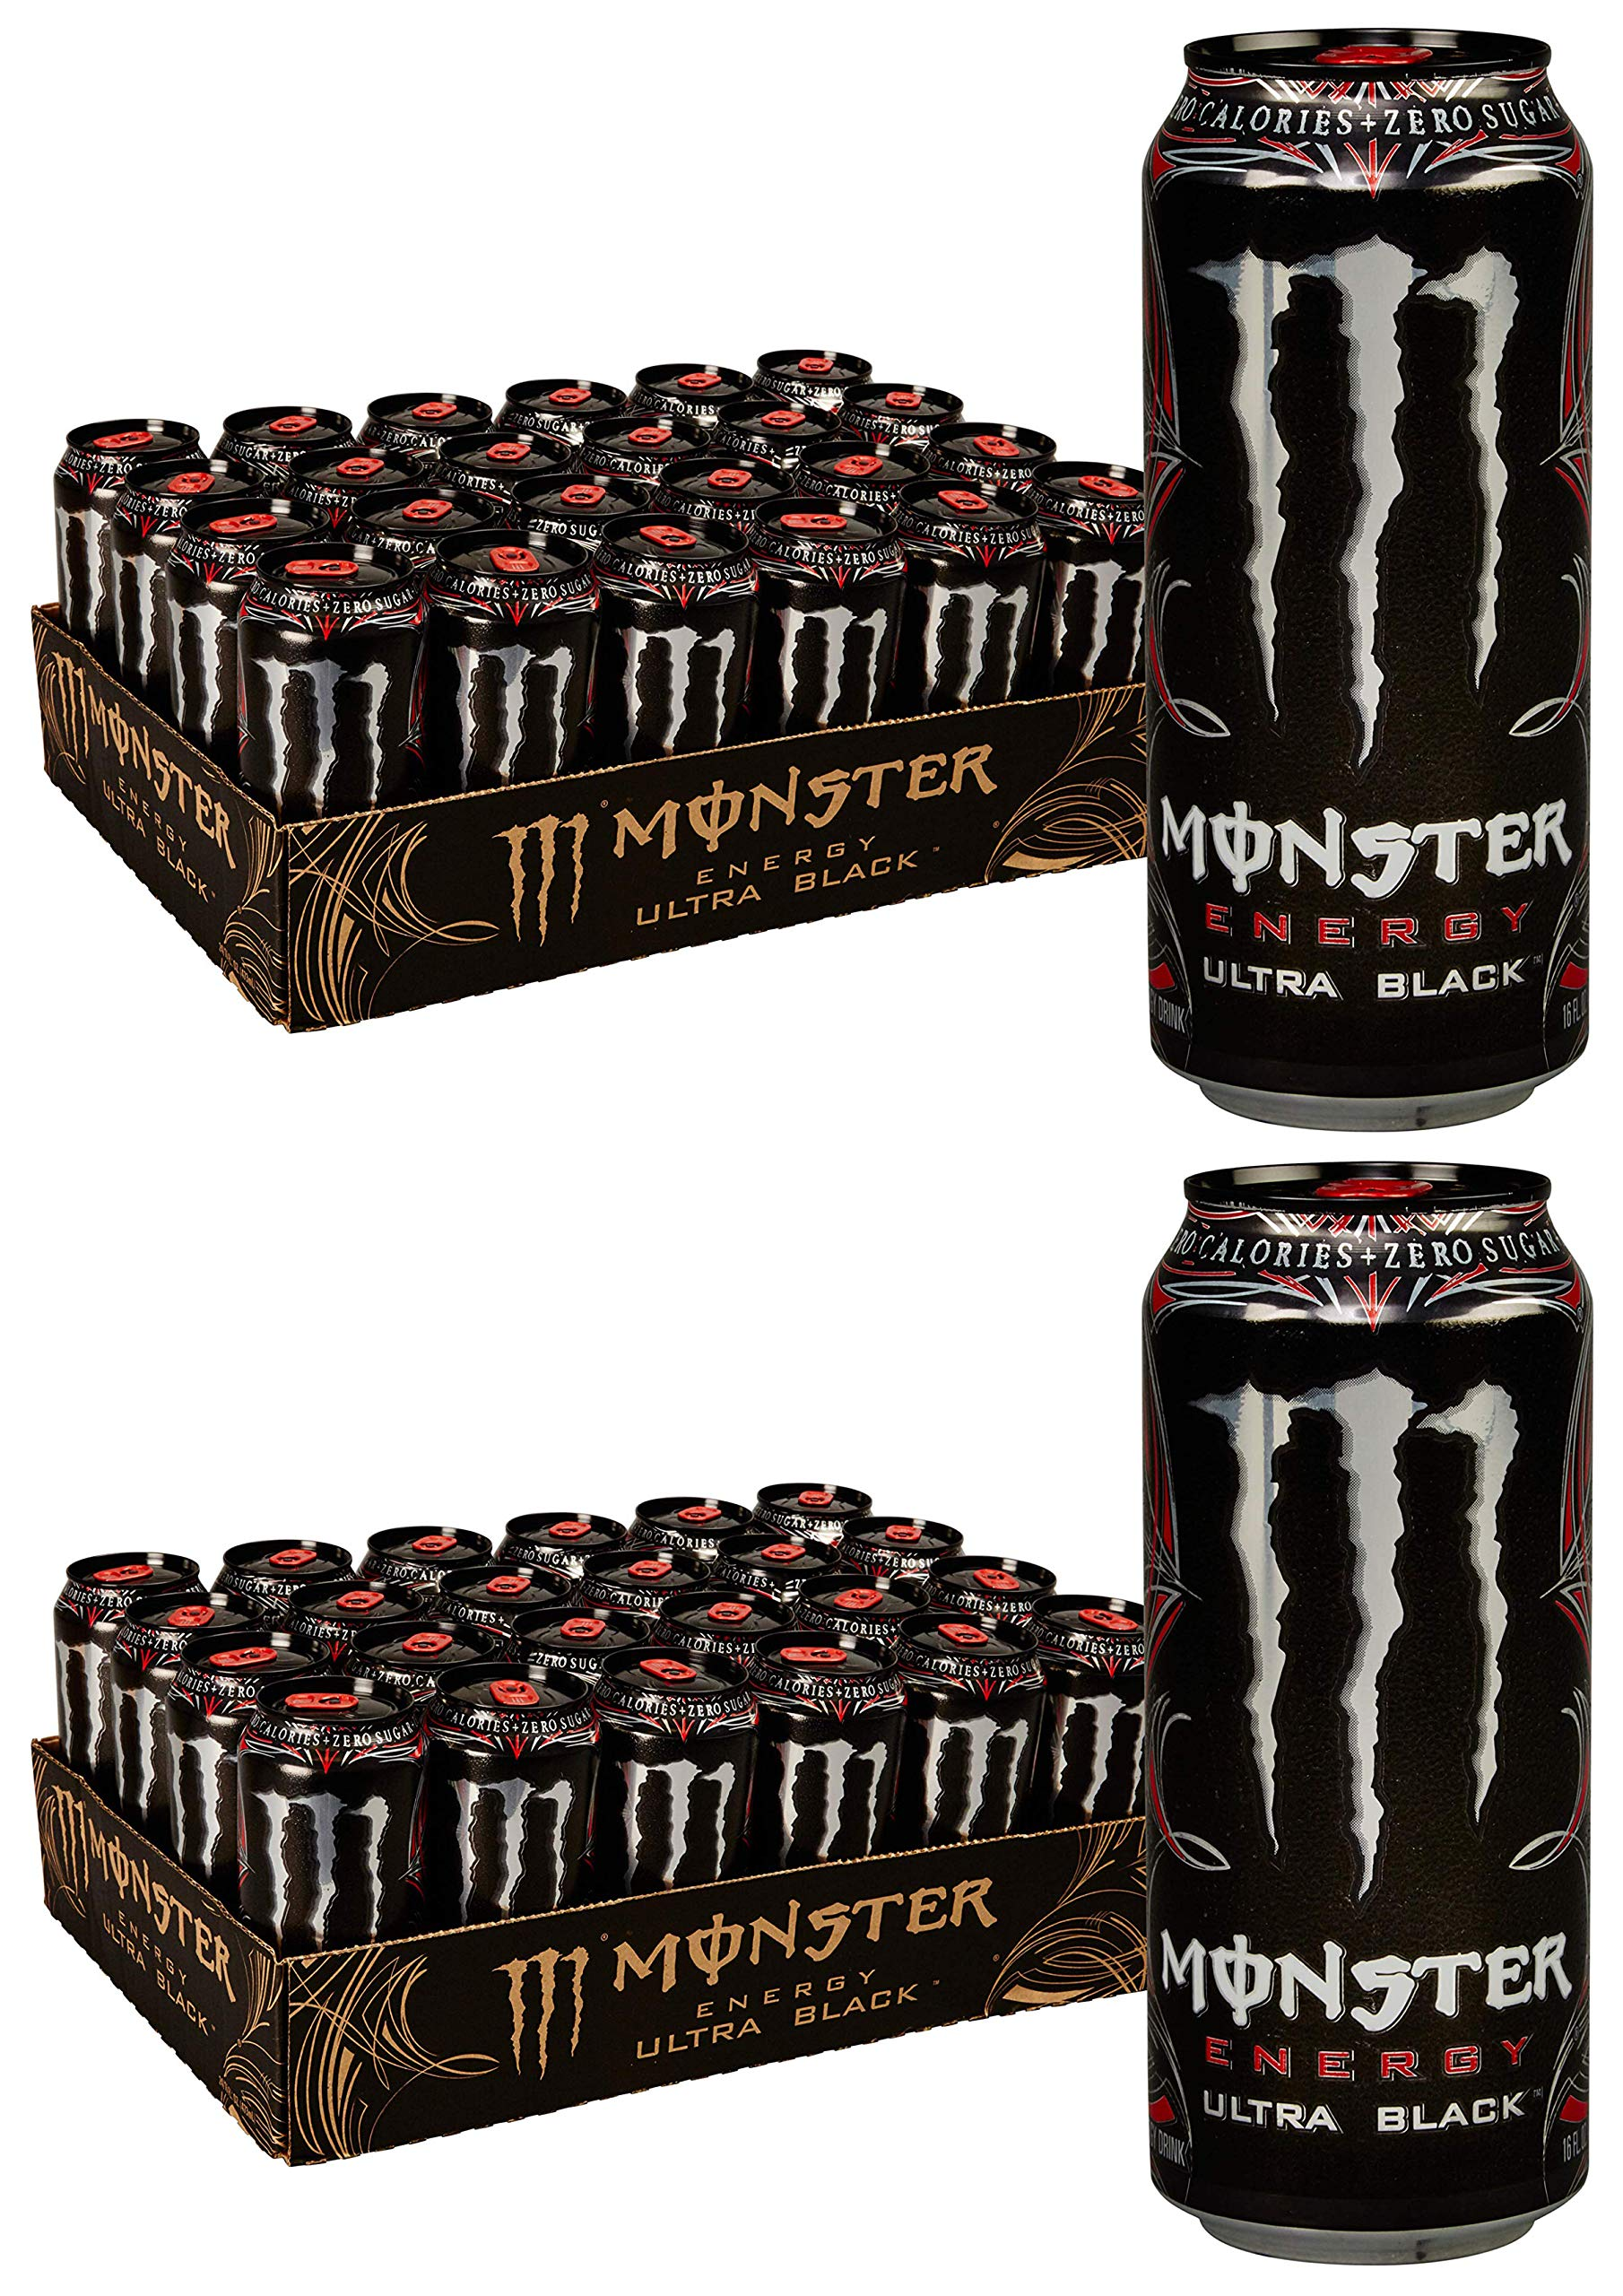 GQZDABAB Ultra Black, Sugar Free Energy Drink, 16 Ounce, 2 Cases of 24 Cans